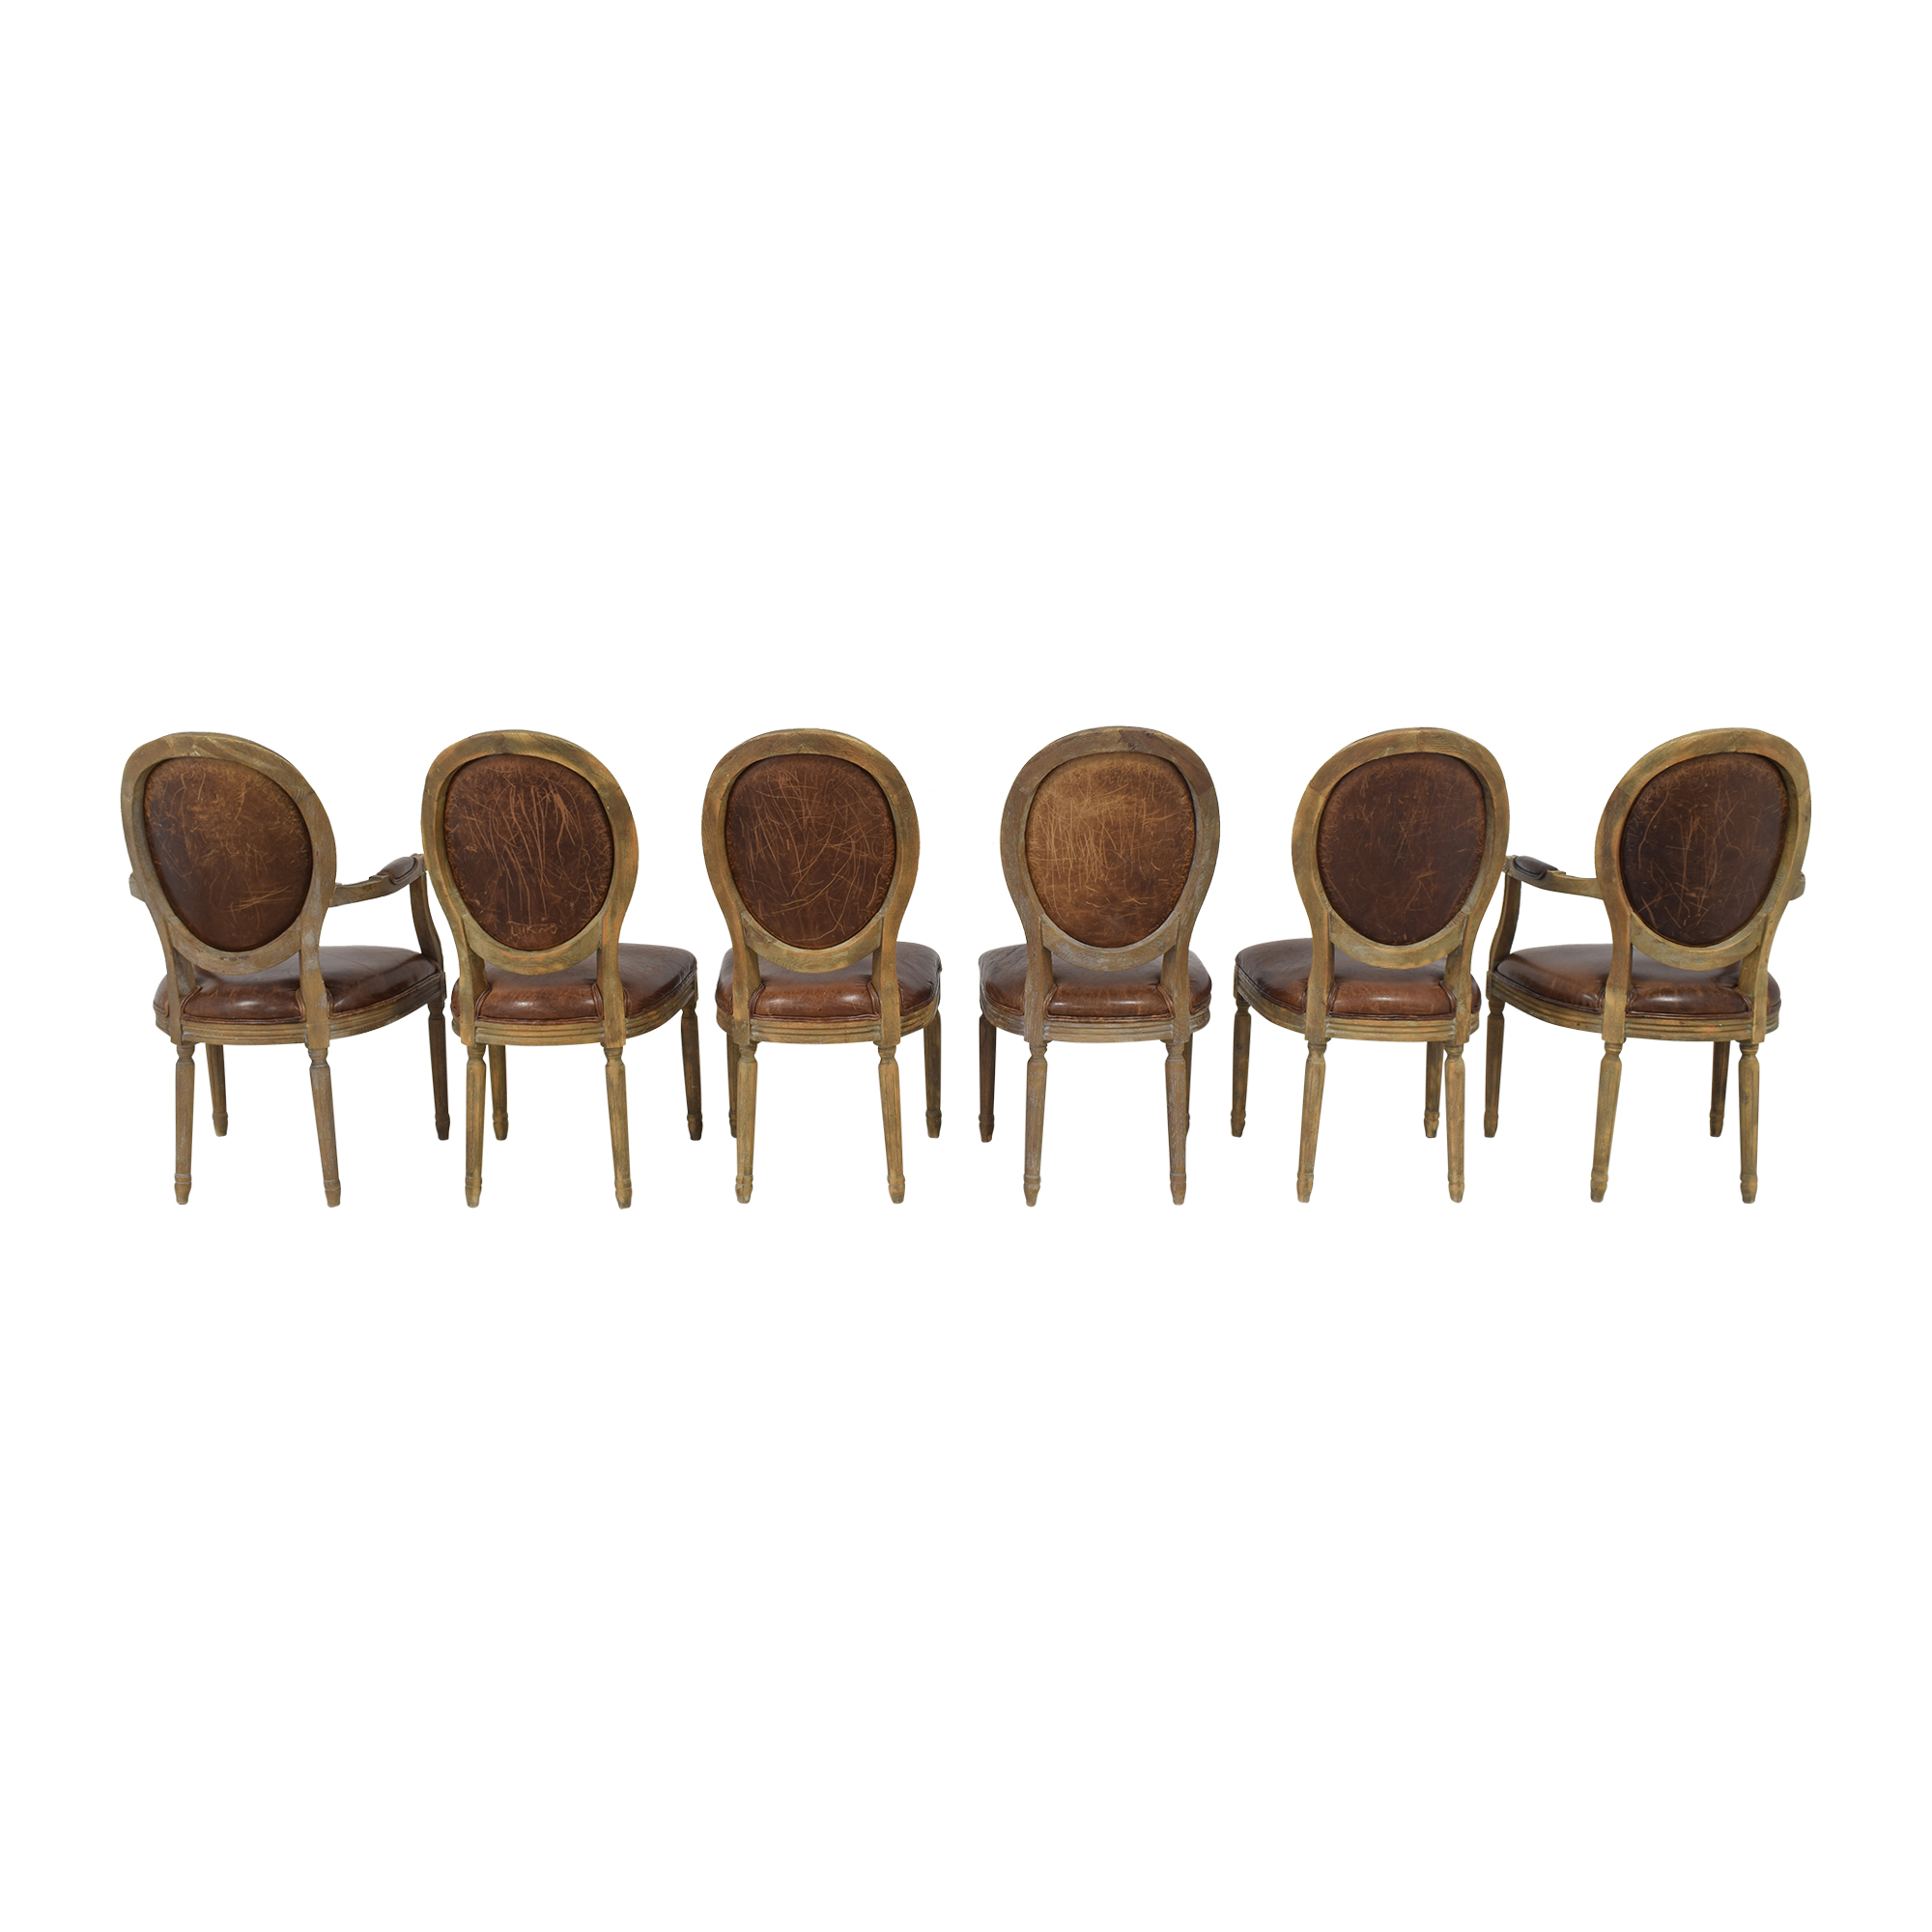 Restoration Hardware Restoration Hardware Vintage French Round Dining Chairs discount